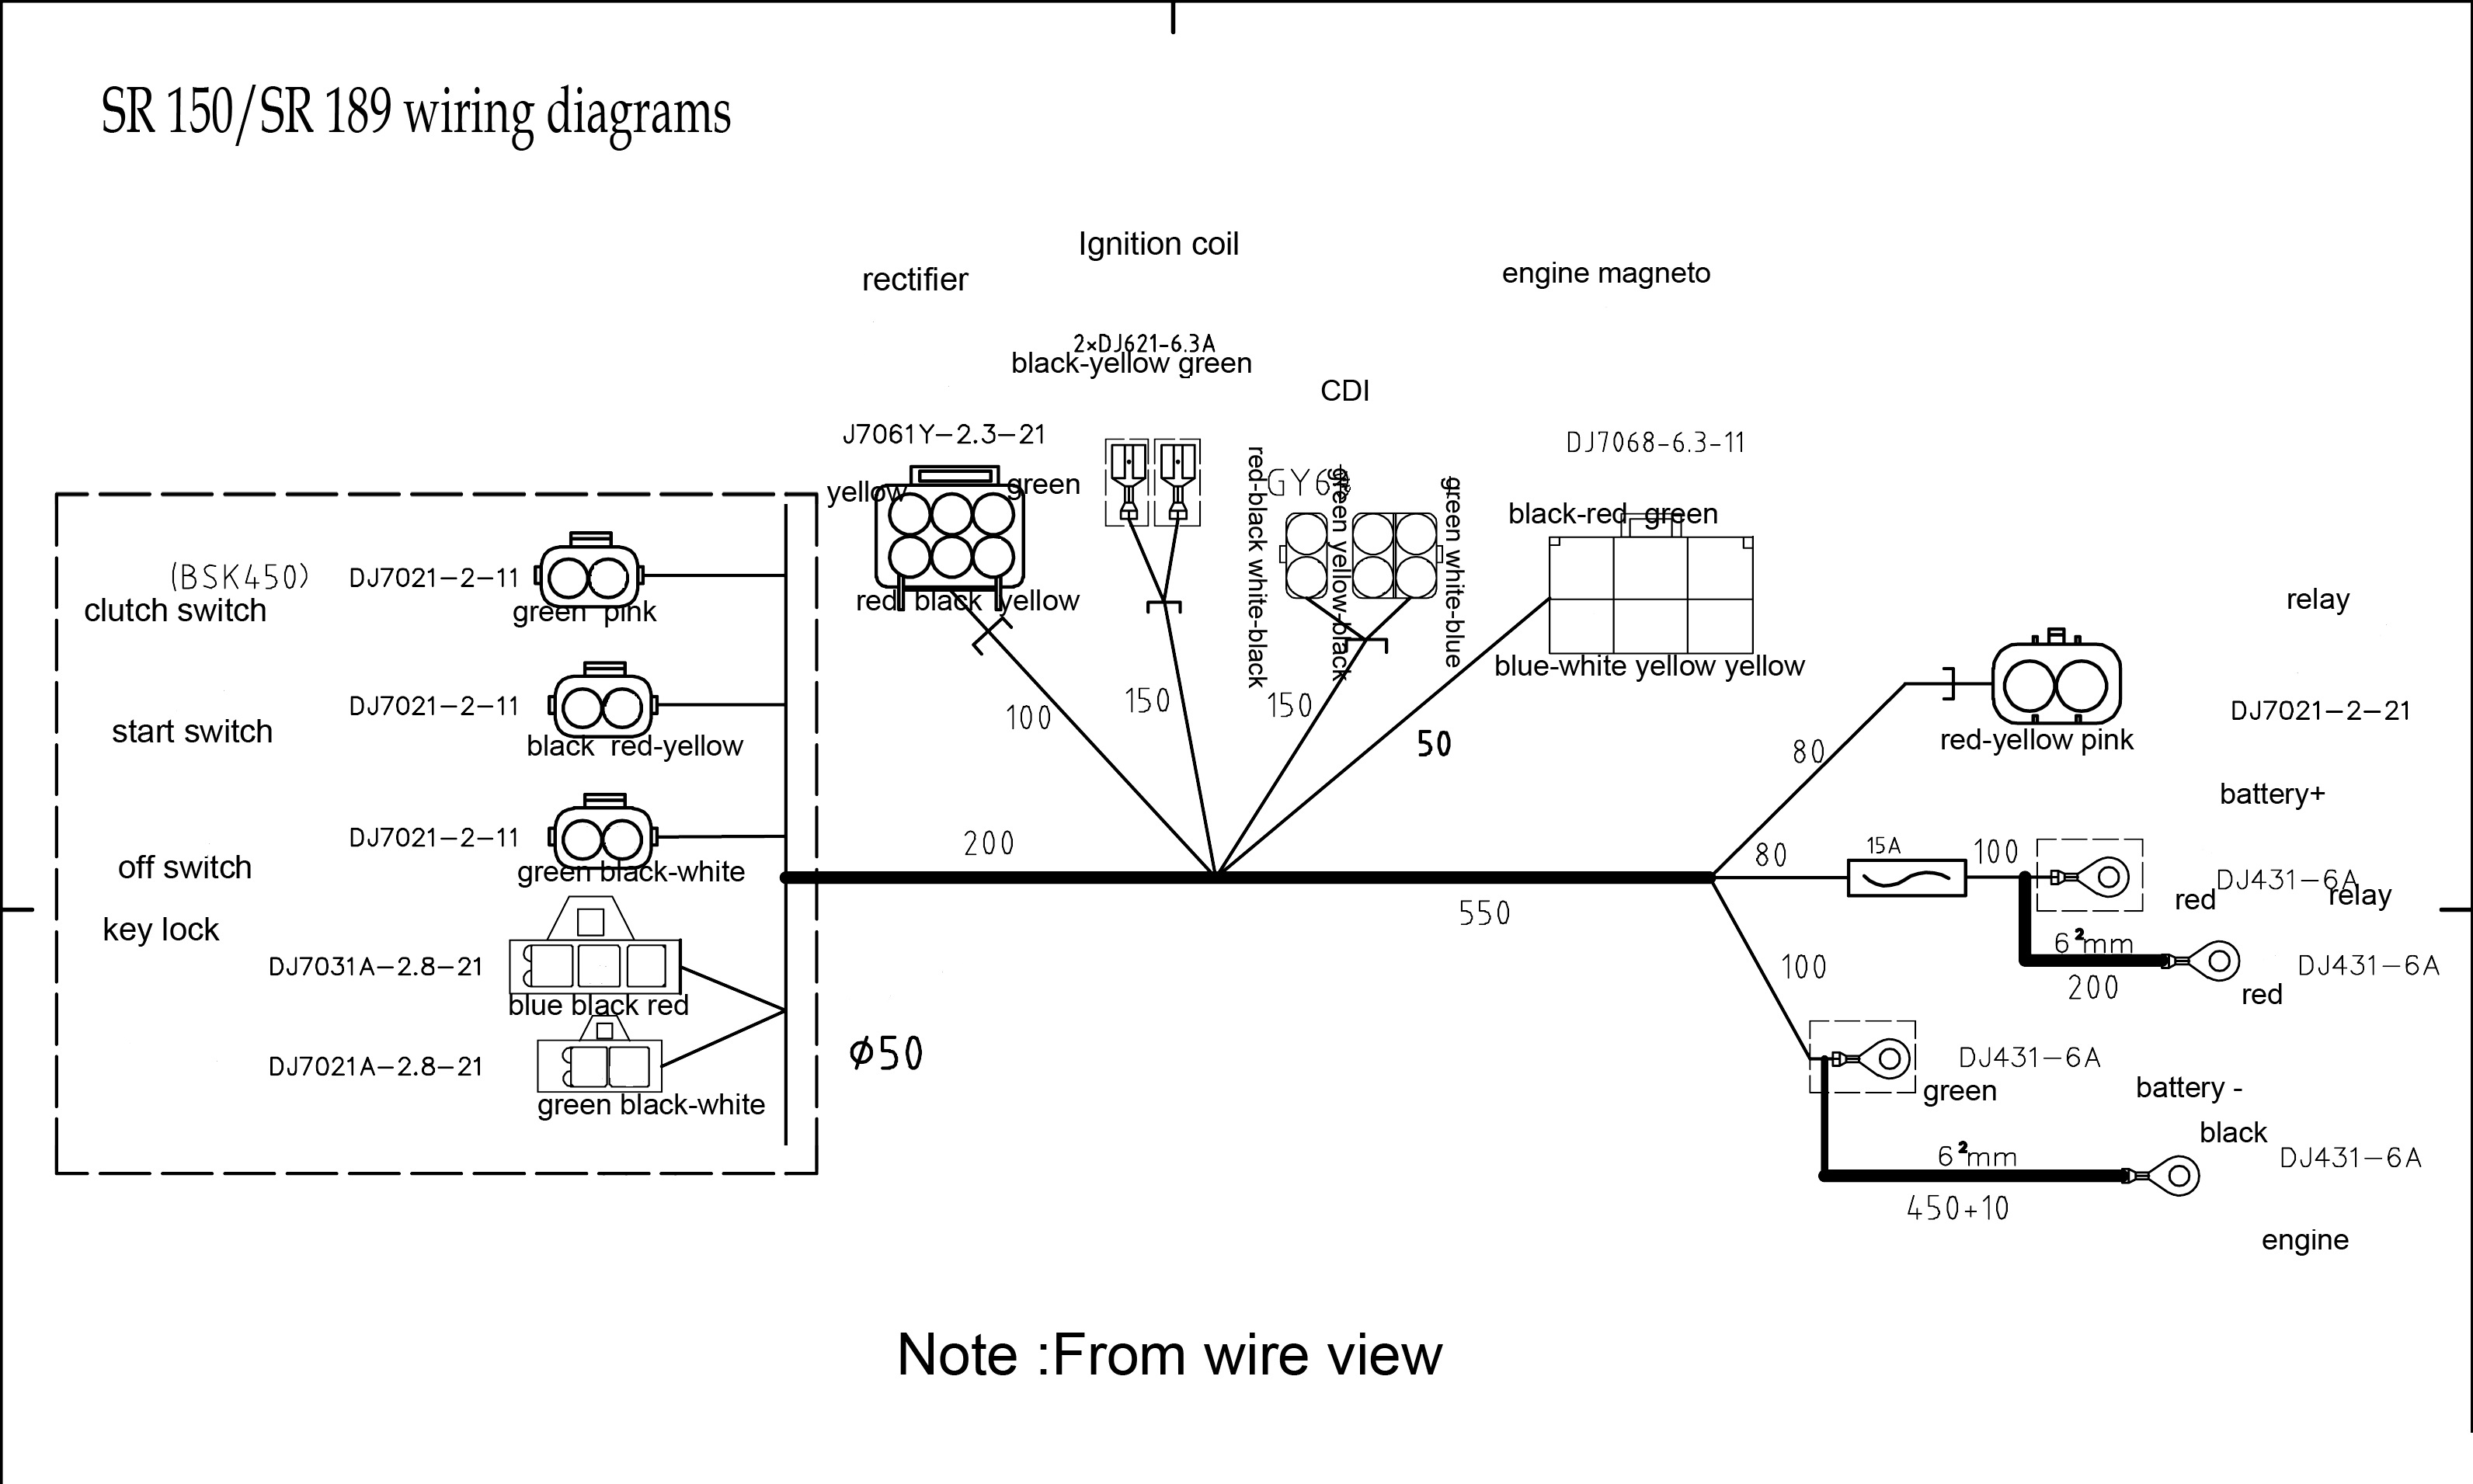 sr189 dirt bike wire diagram  >